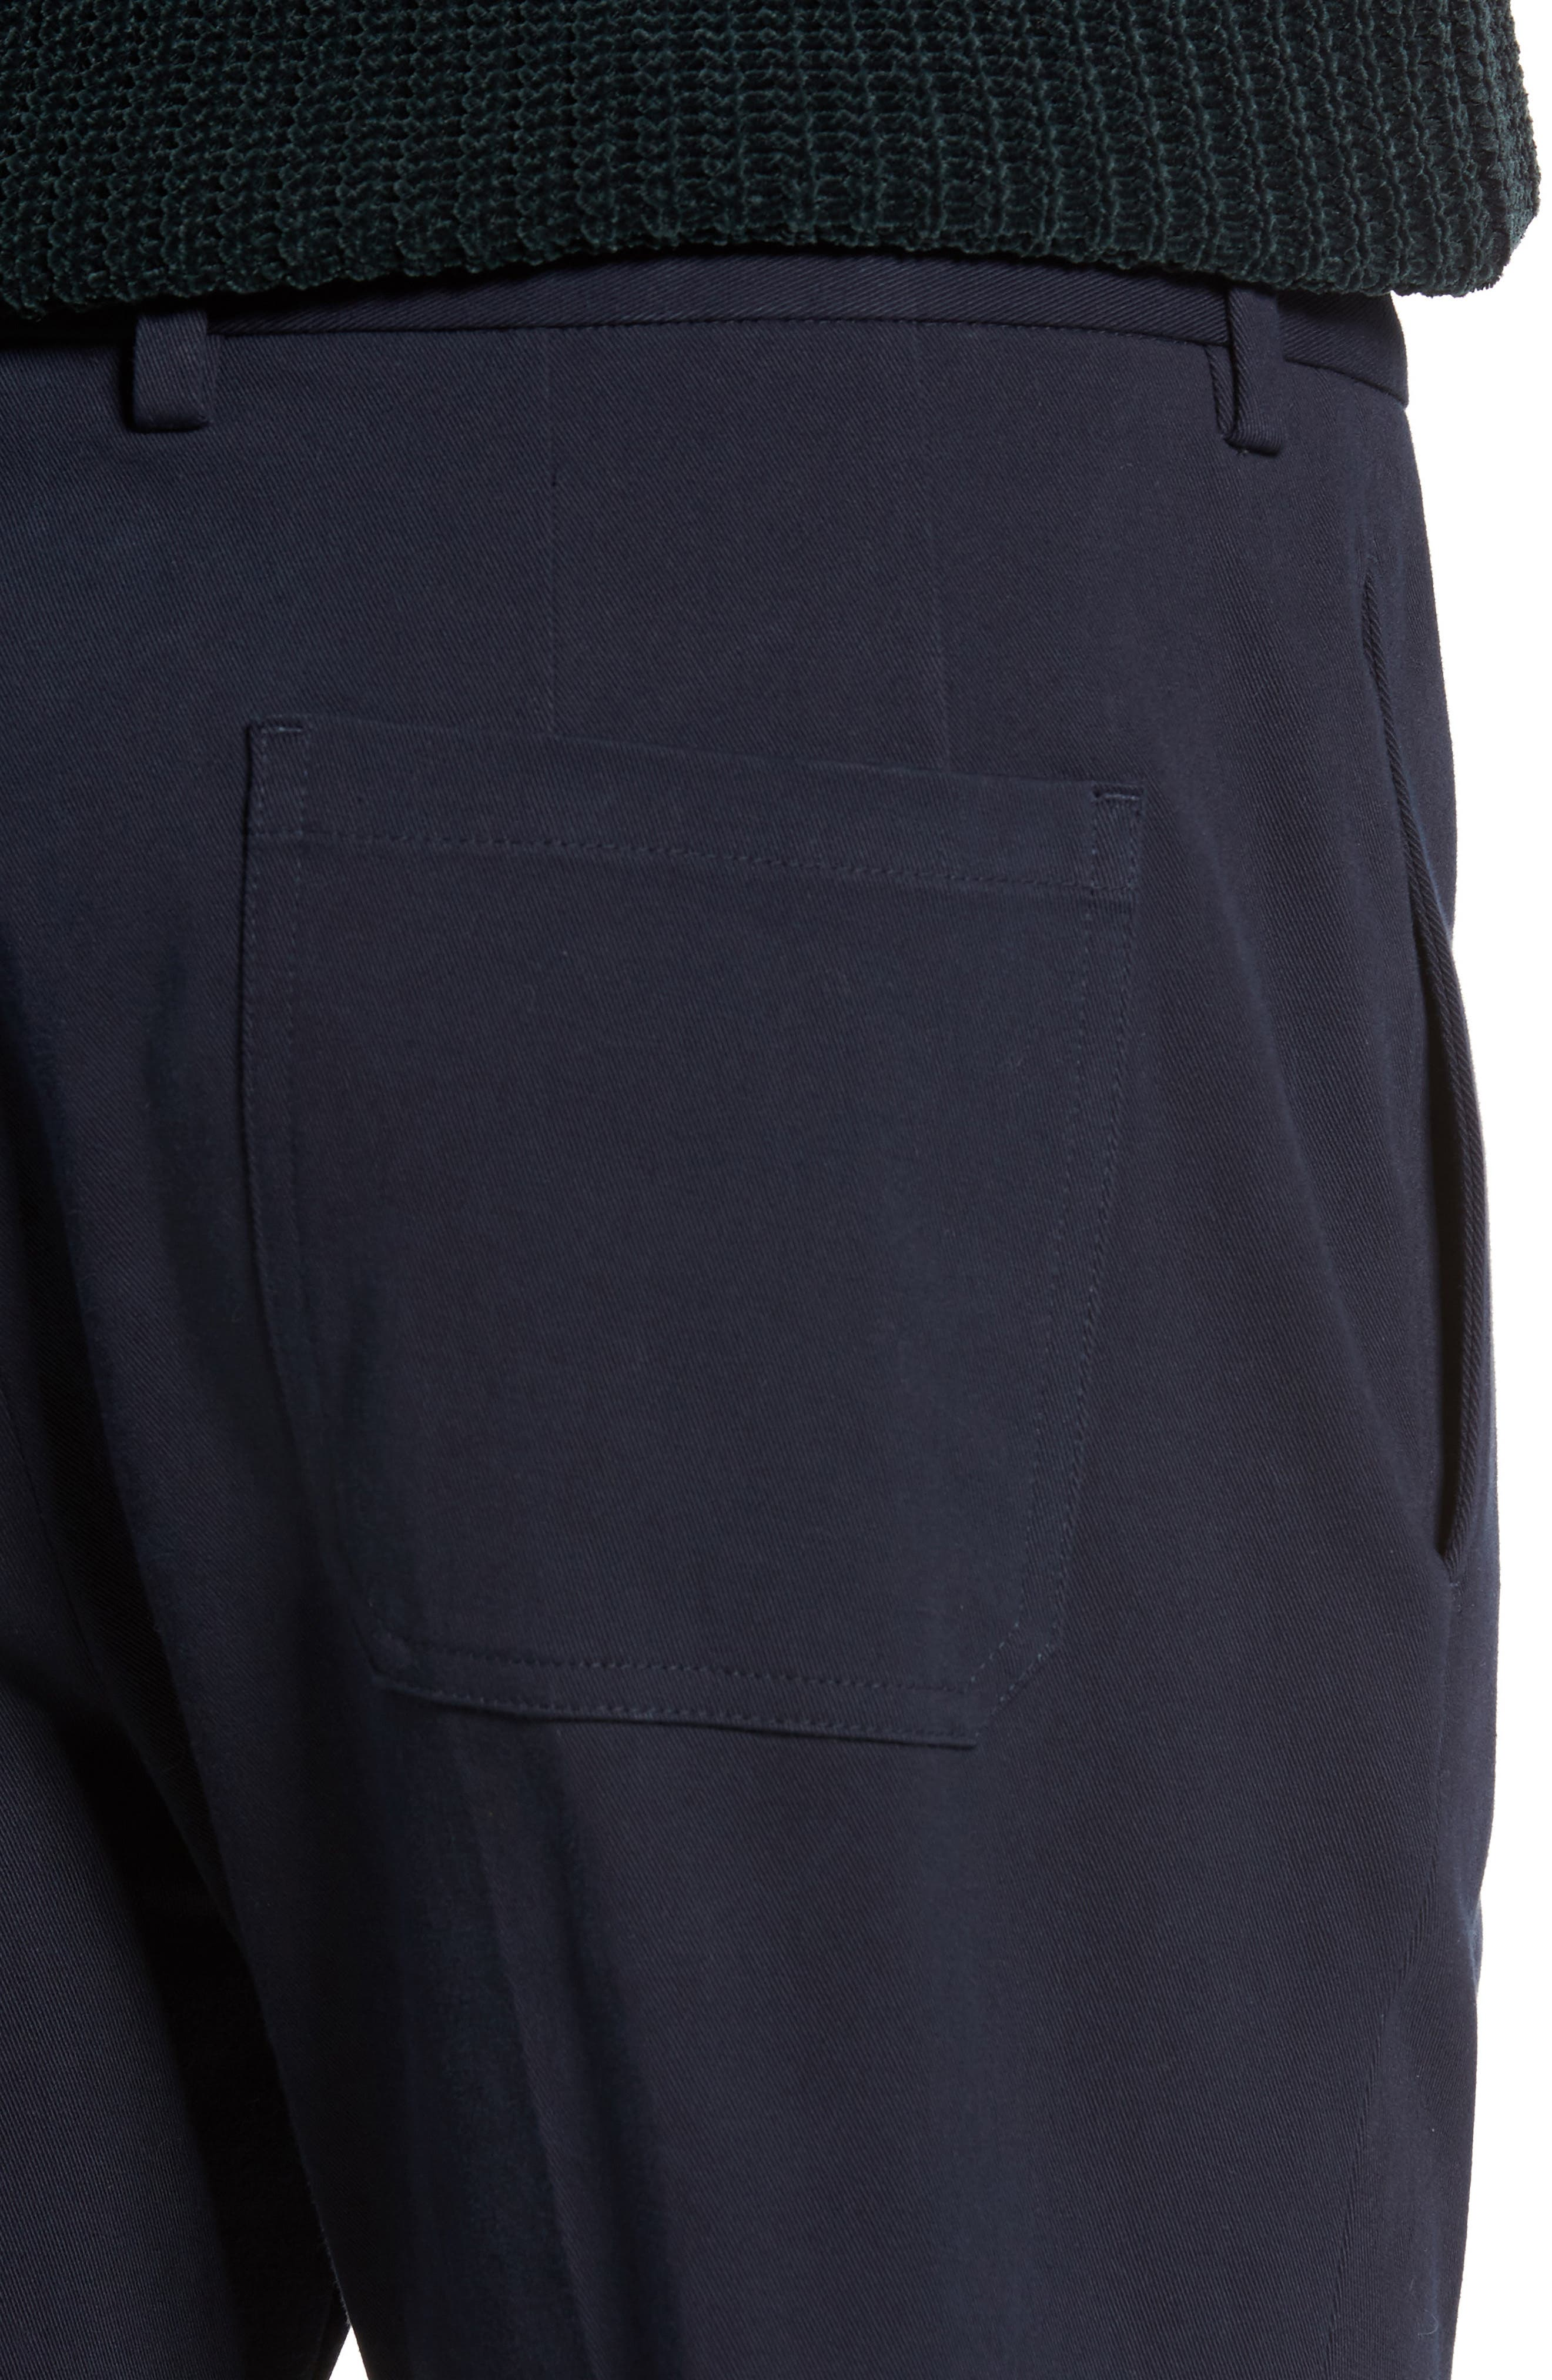 Cropped Slim Fit Trousers,                             Alternate thumbnail 4, color,                             403